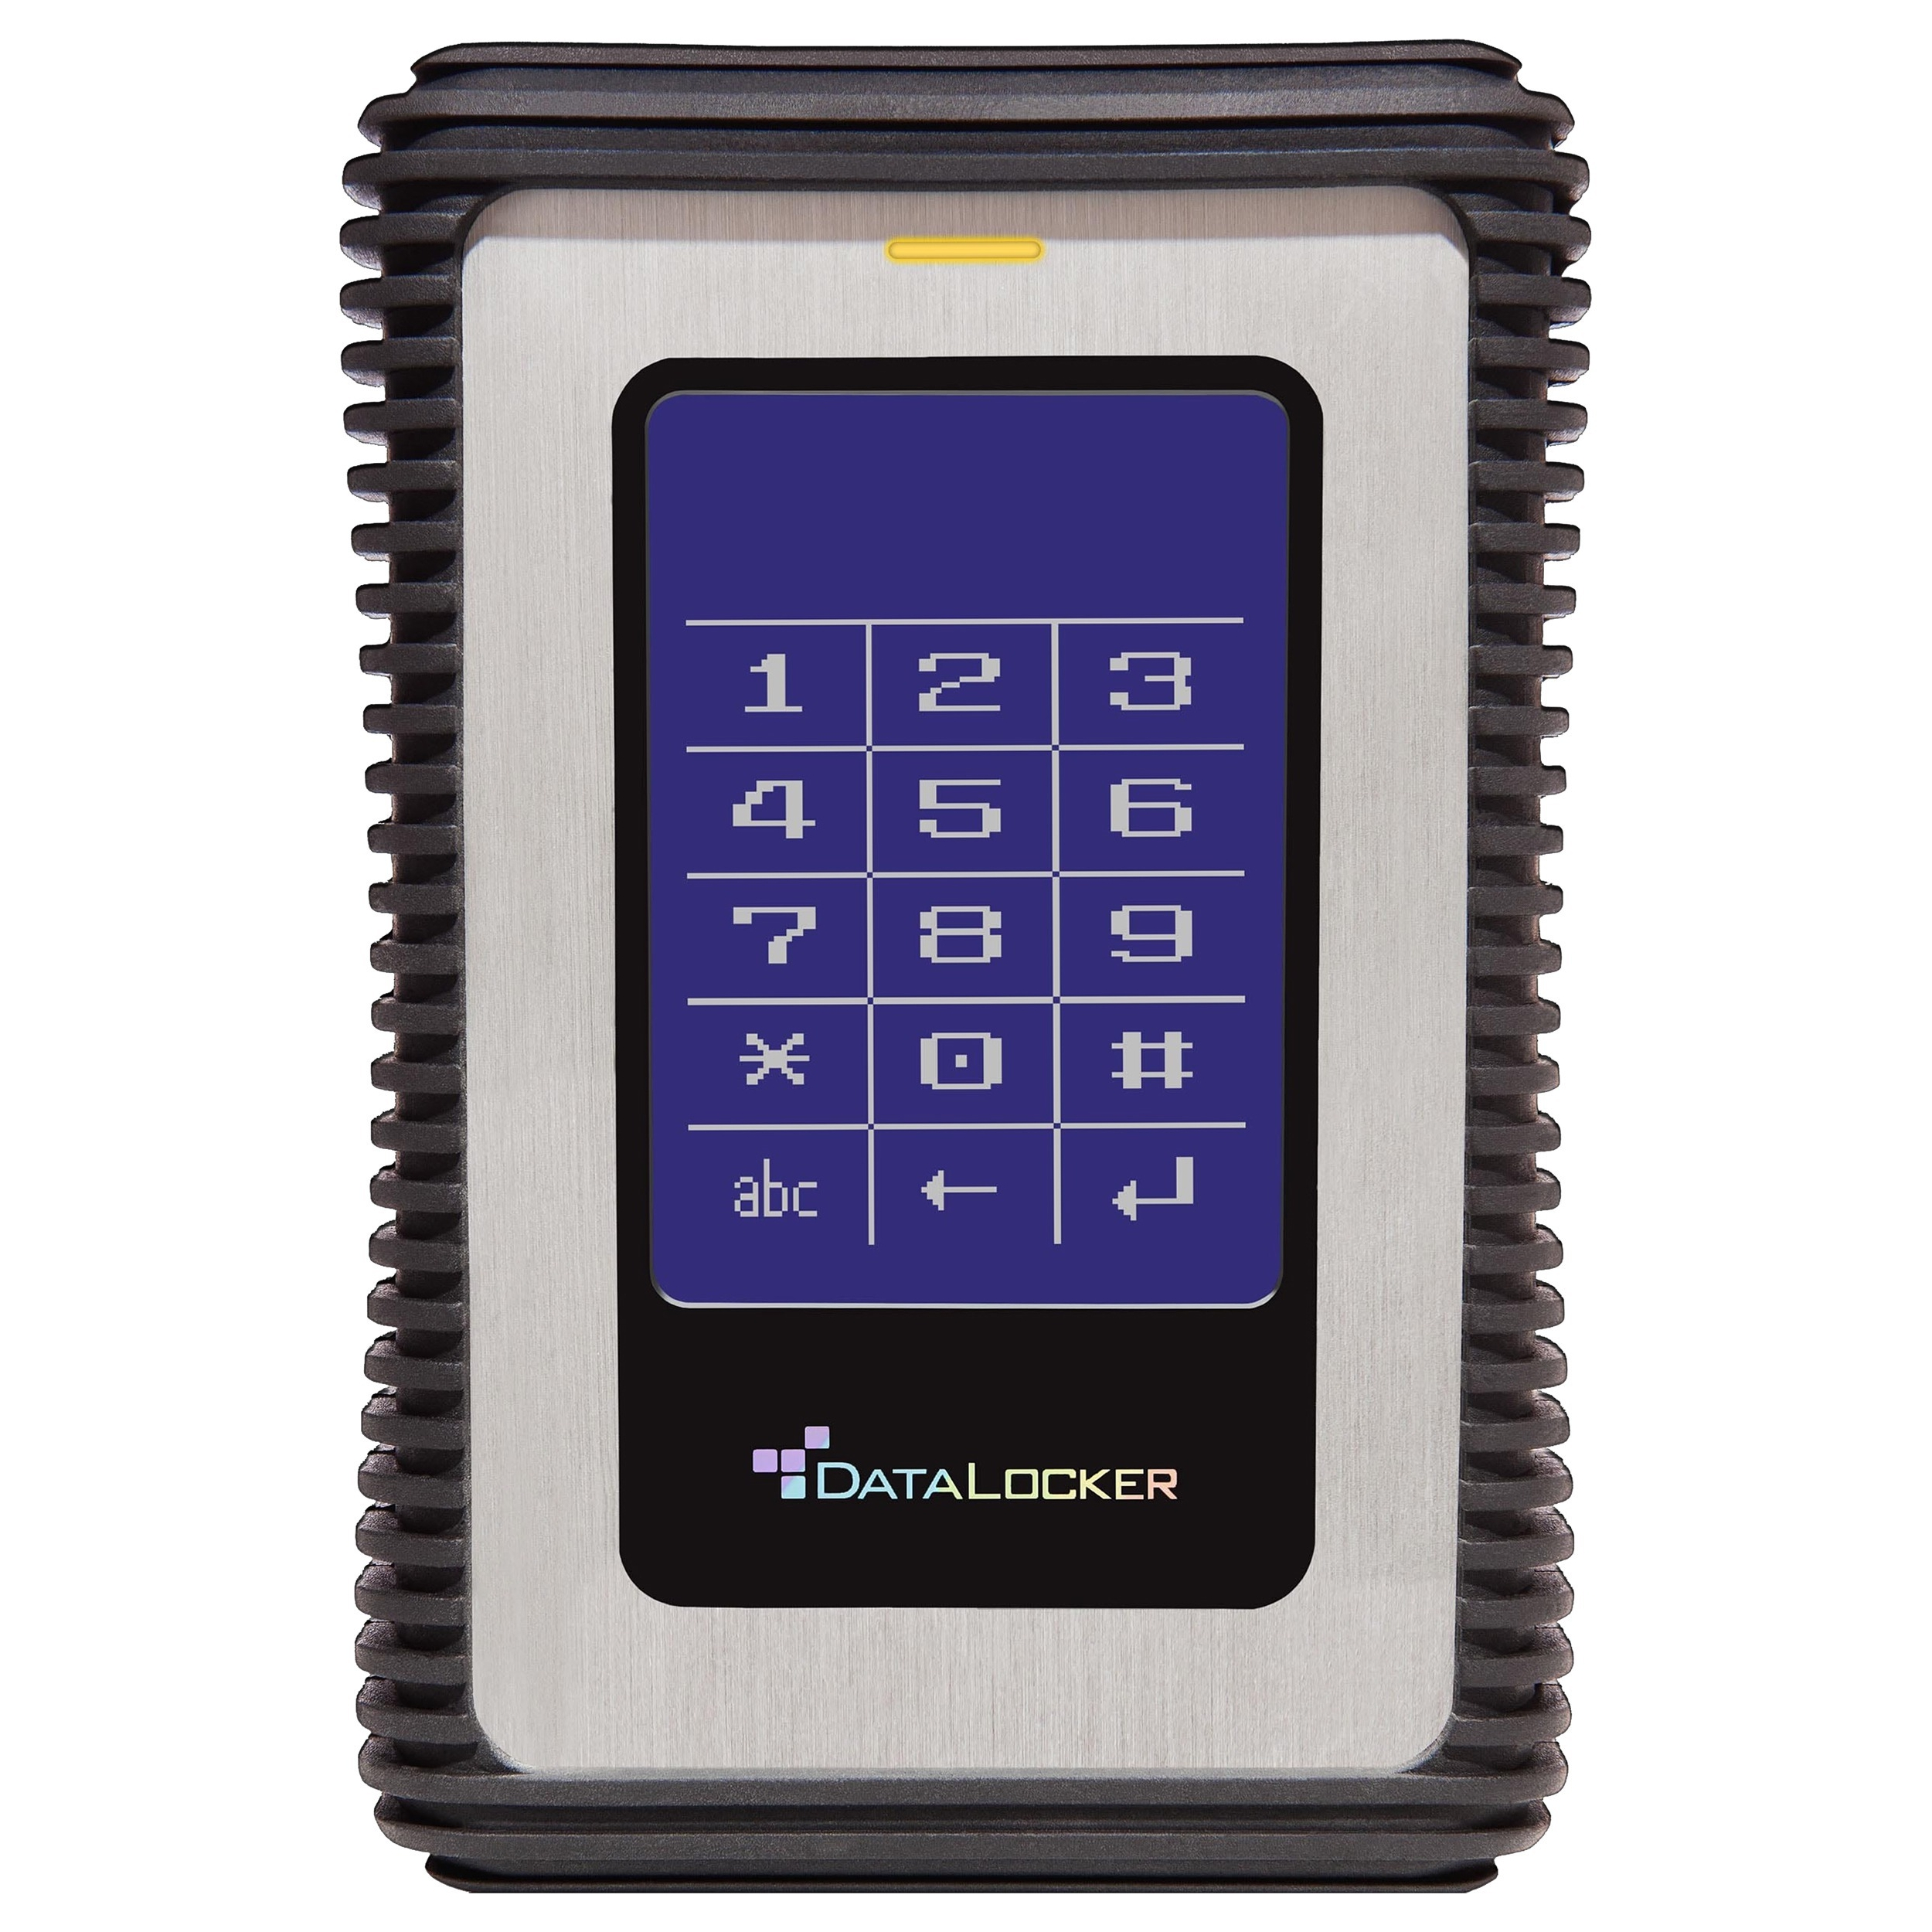 DataLocker DL3 1.5 TB Encrypted External Hard Drive with RFID Two-Factor Authentication - USB 3.0 256-bit AES XTS mode